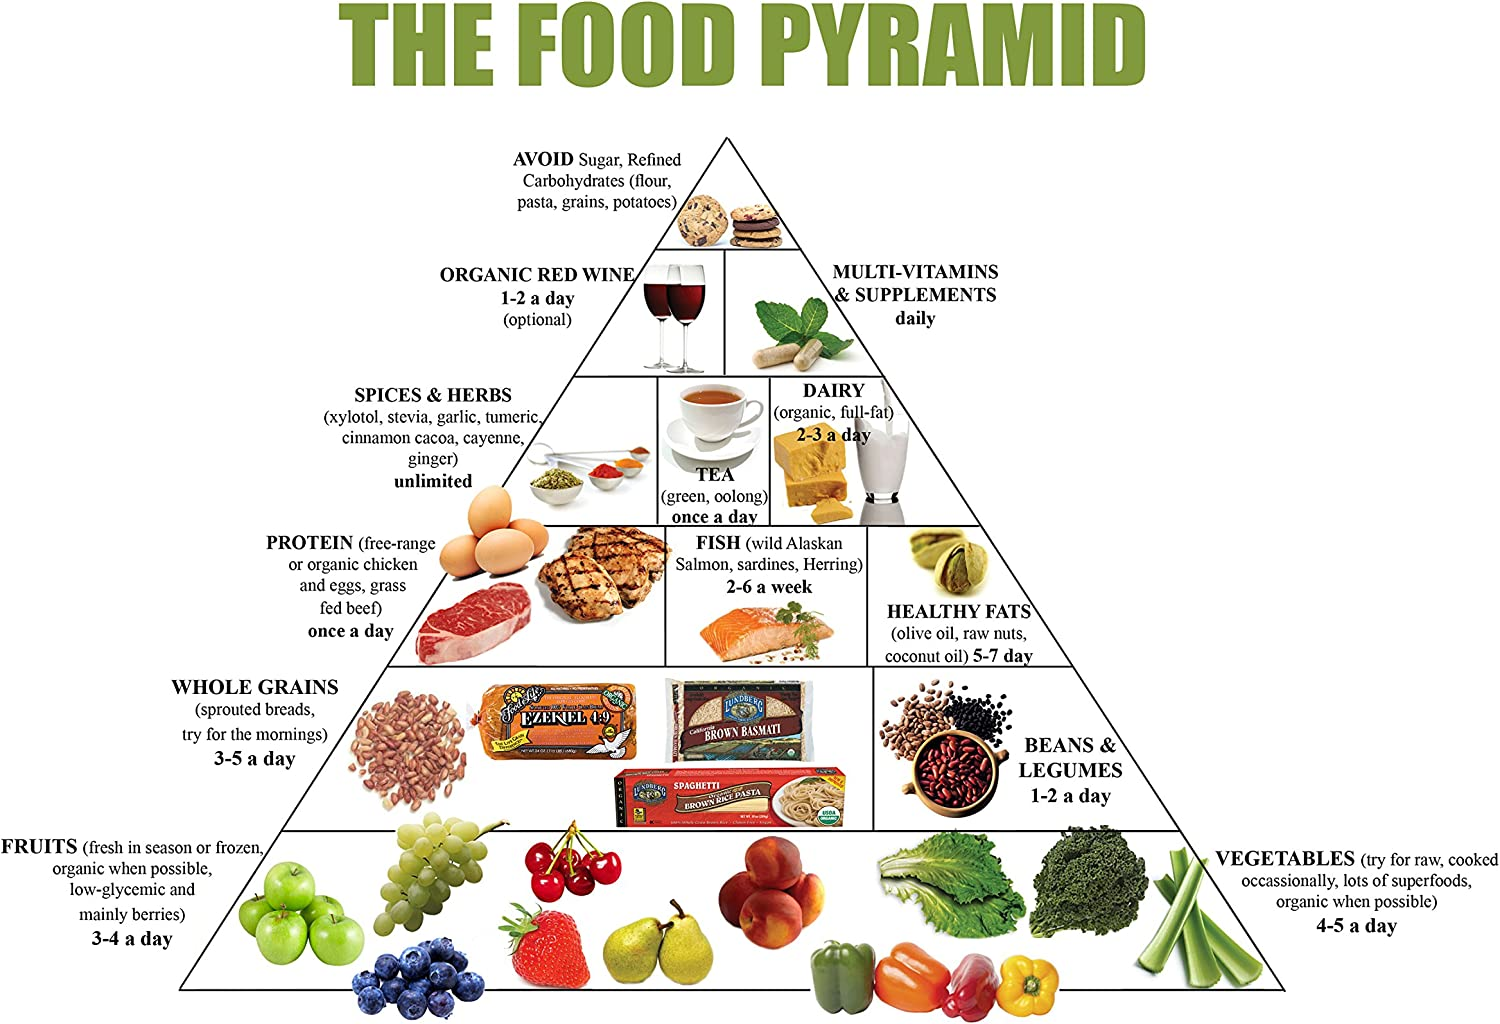 Amazon Com Food Pyramid Healthy Eating Meal And Diet Plan 13x19 Poster Posters Prints